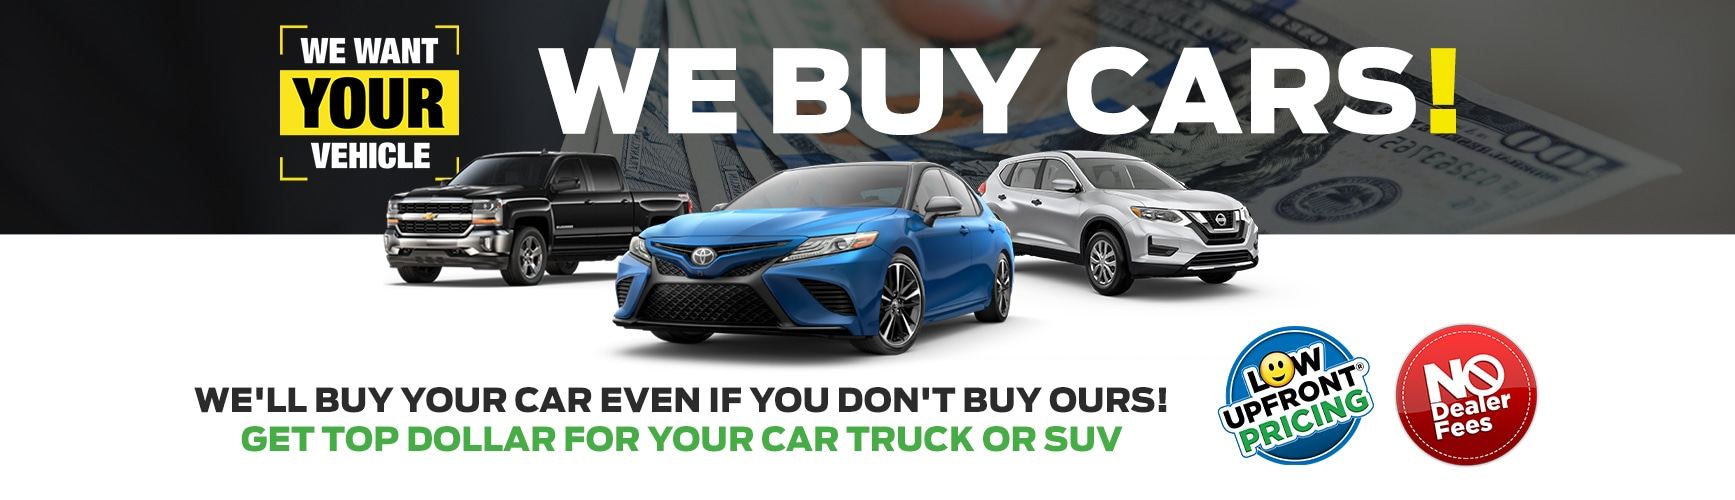 GET TOP DOLLAR FOR YOUR CAR, TRUCK OR SUV.